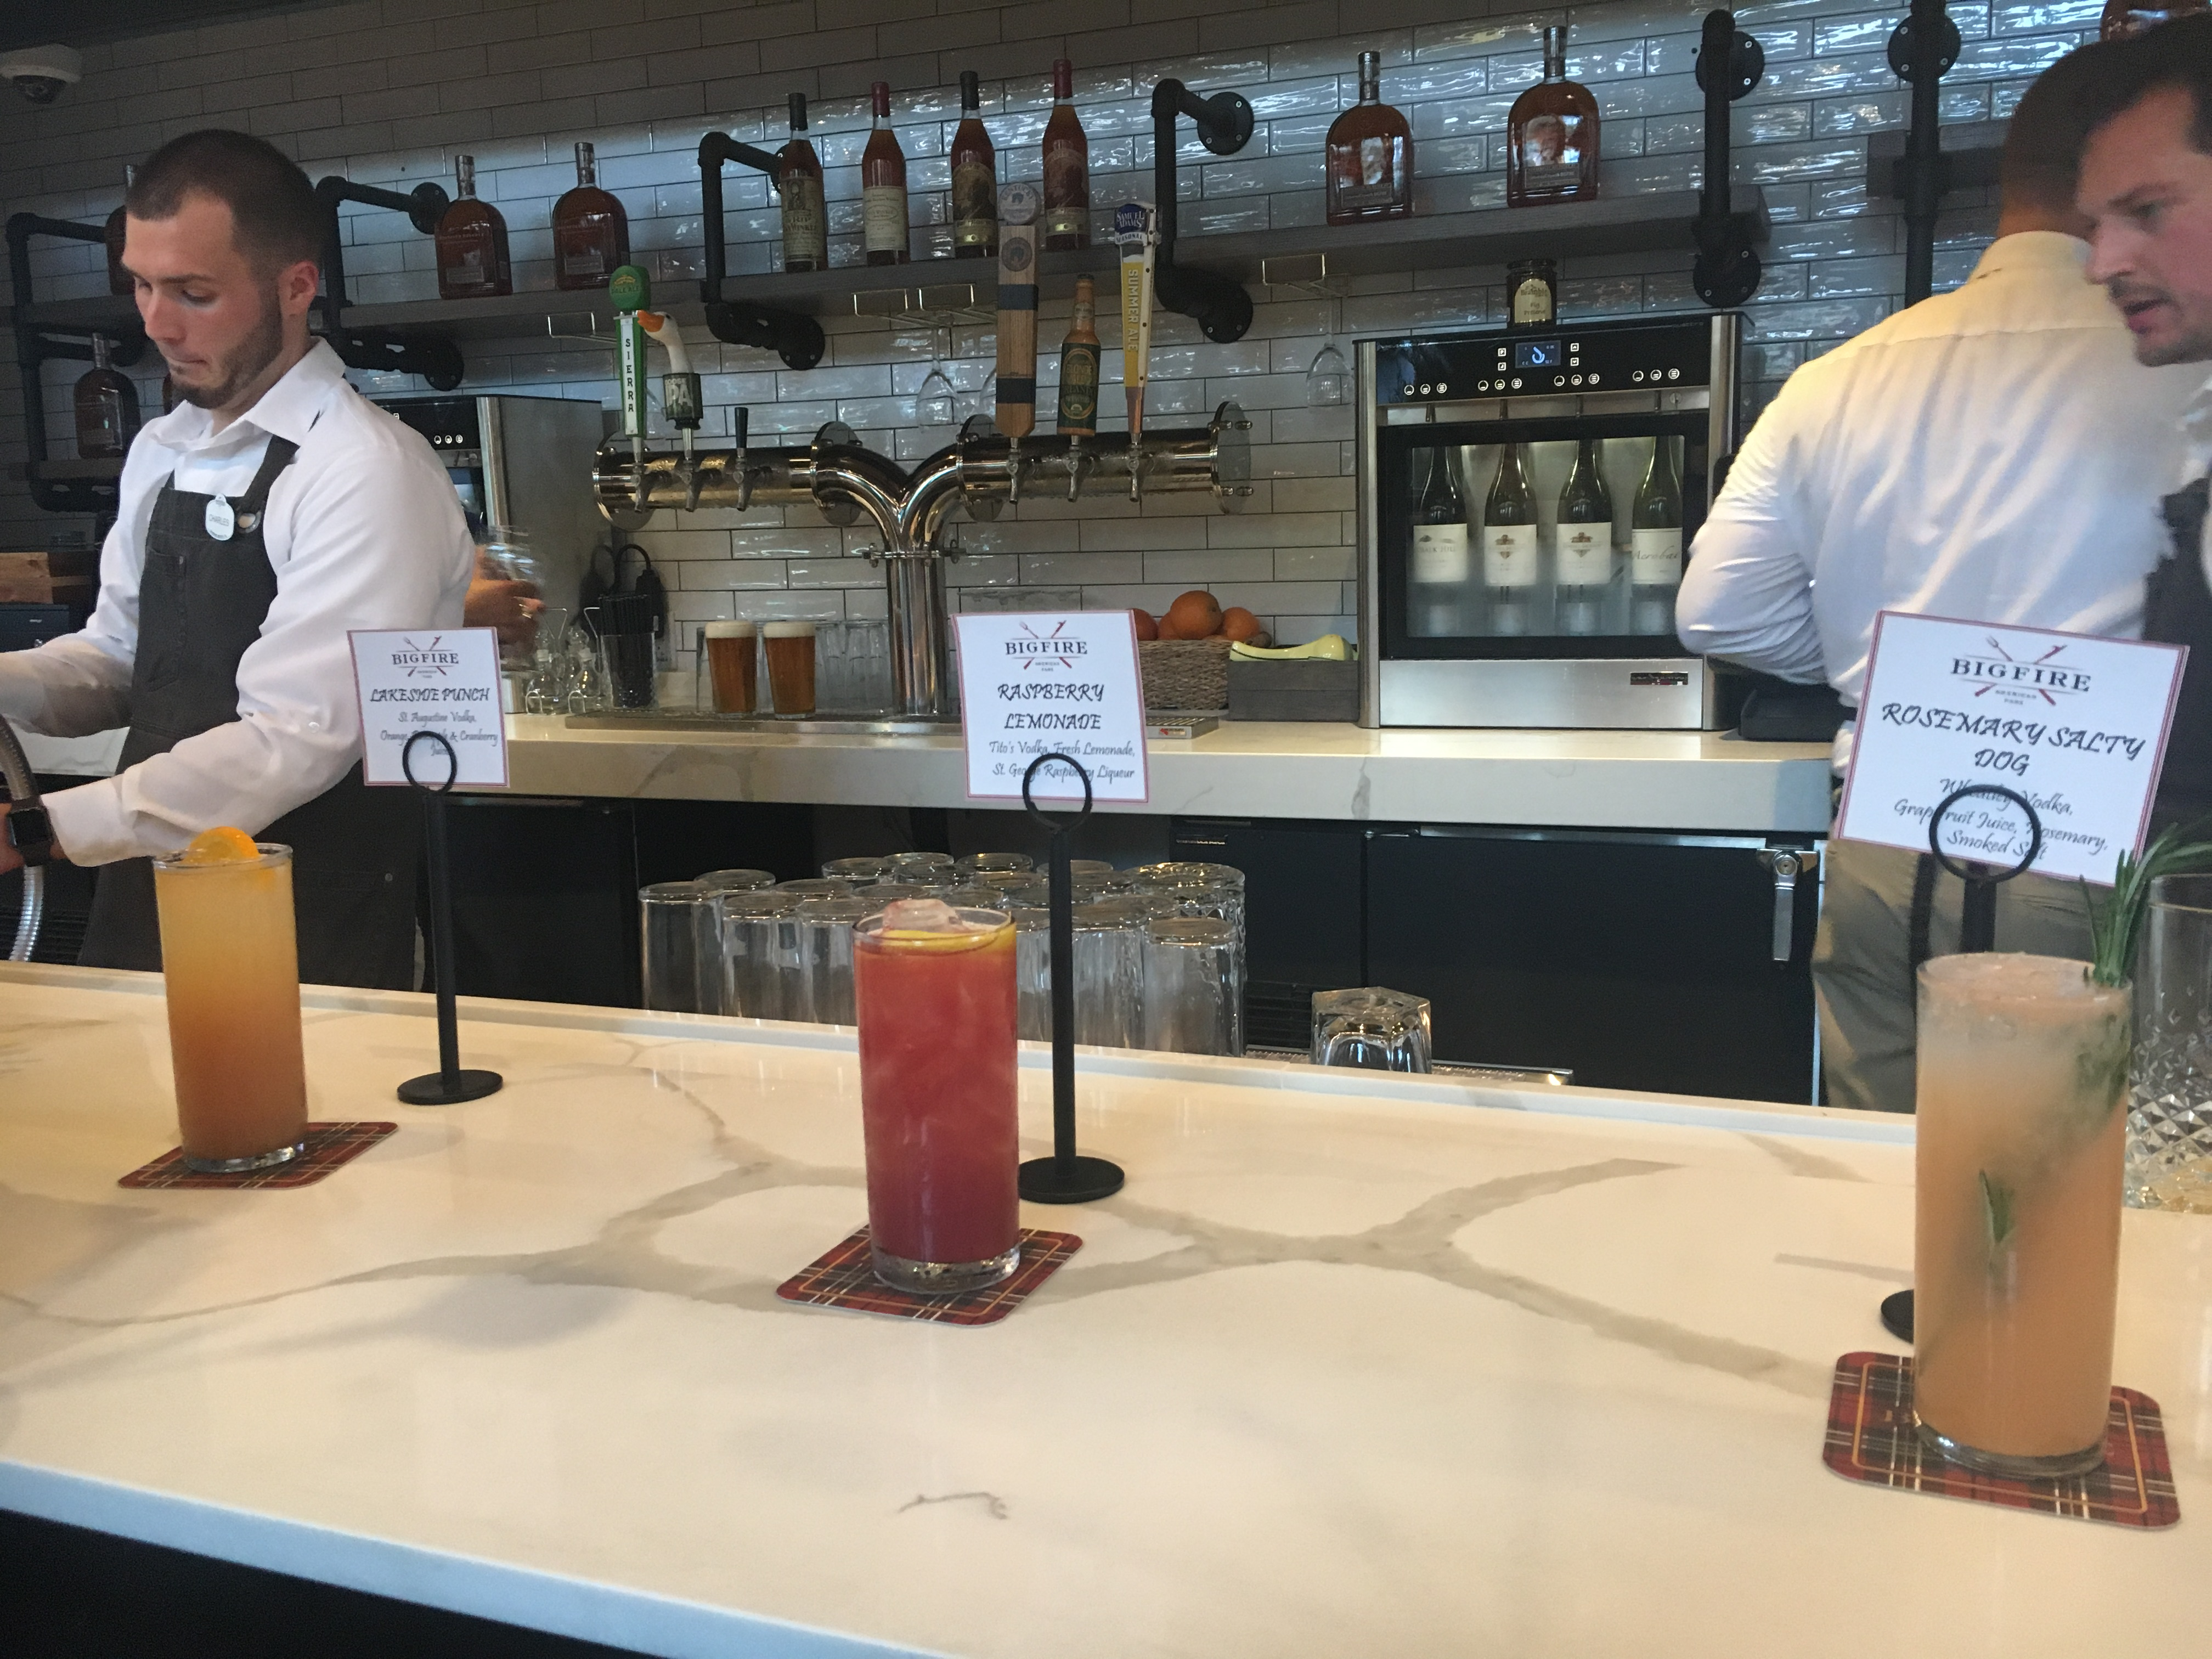 Bigfire serves a number of vodka-based cocktails, including lakeside punch, raspberry lemonade, and rosemary salty dog.